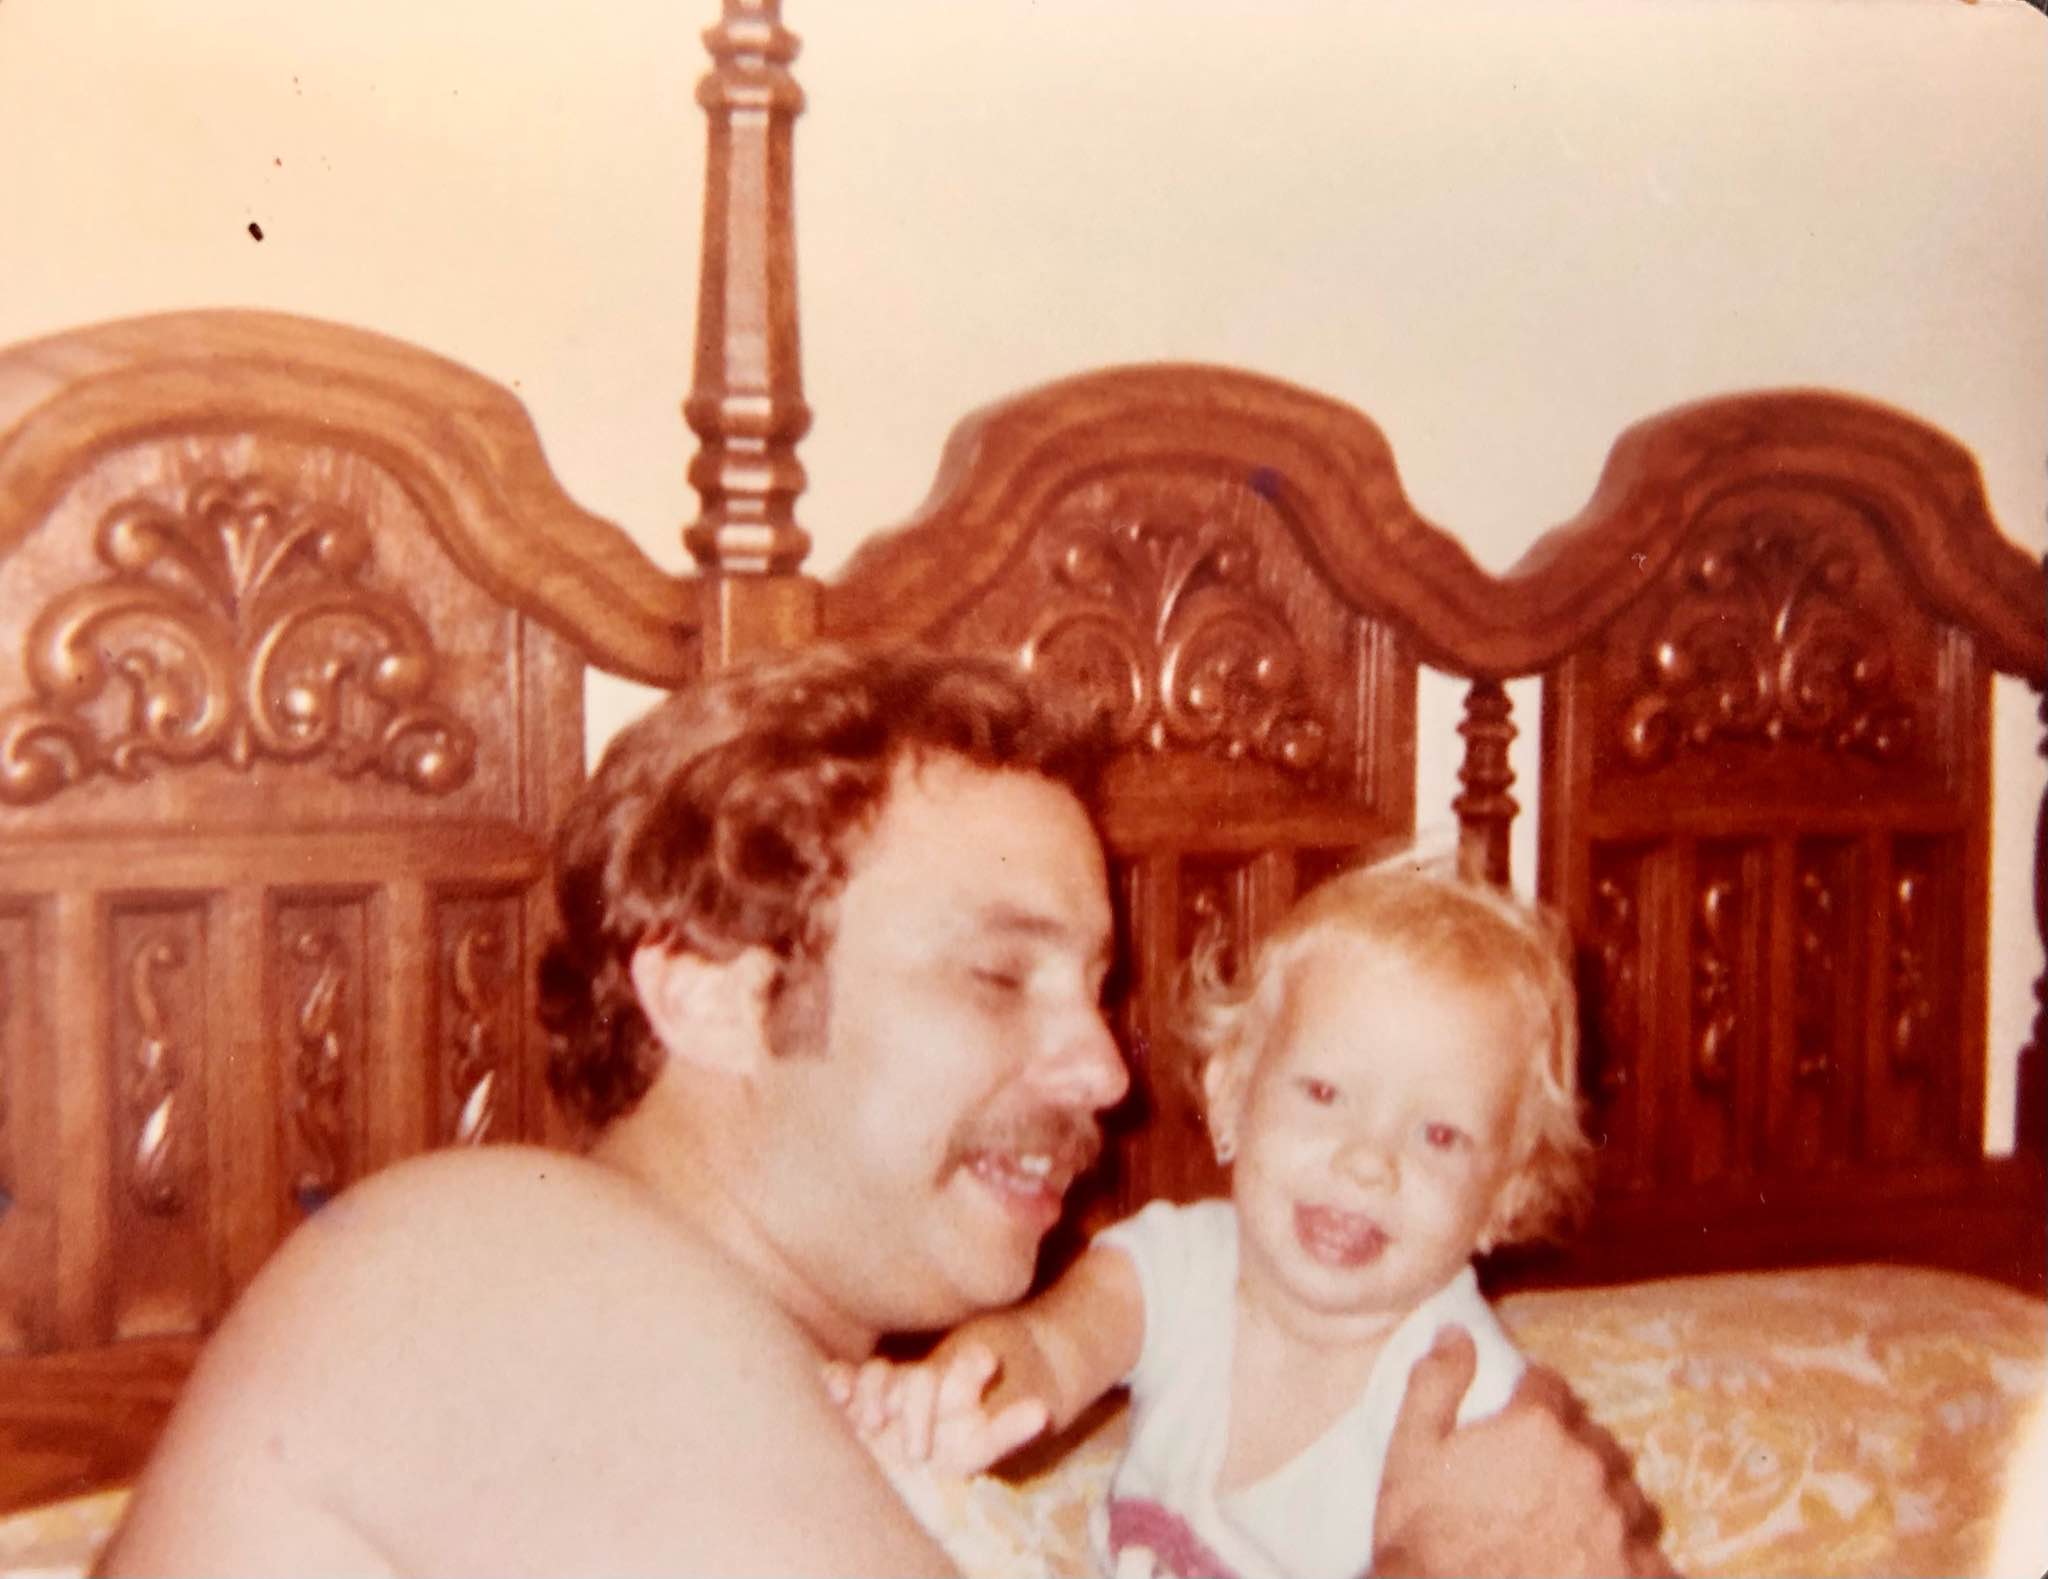 Even though he had professional success, my father struggled with obesity and mental illness.